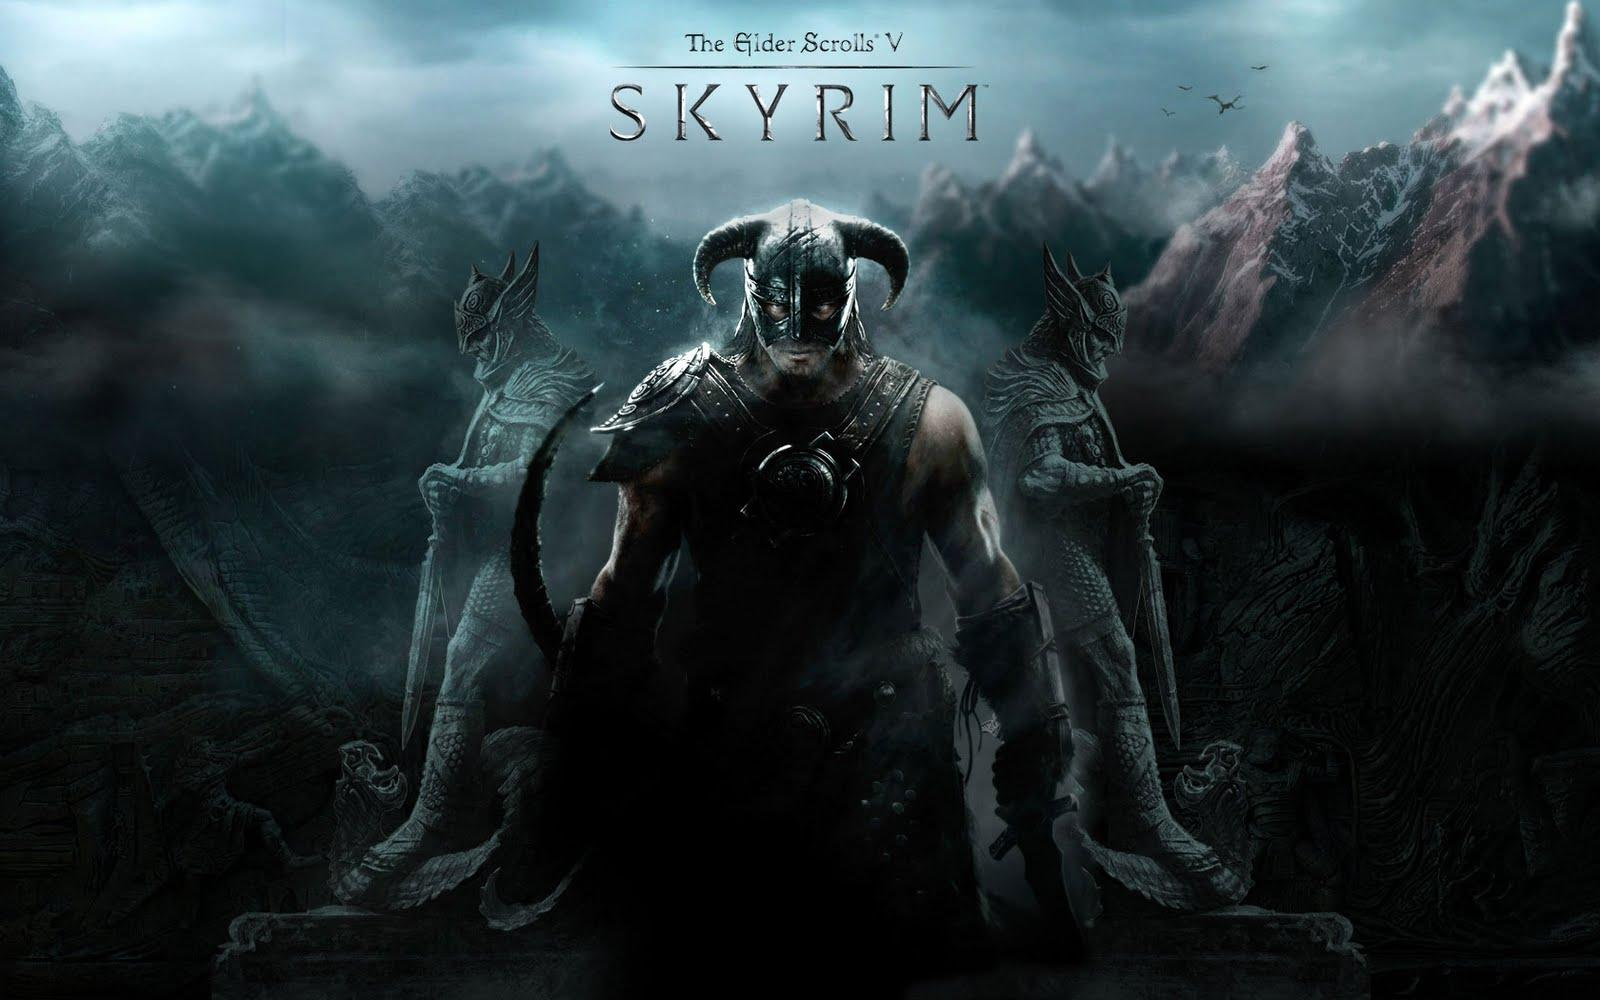 Via https://vignette4.wikia.nocookie.net/fallout/images/0/0e/The-Elder-Scrolls-V-Skyrim-1-.jpg/revision/latest?cb=20110909164434